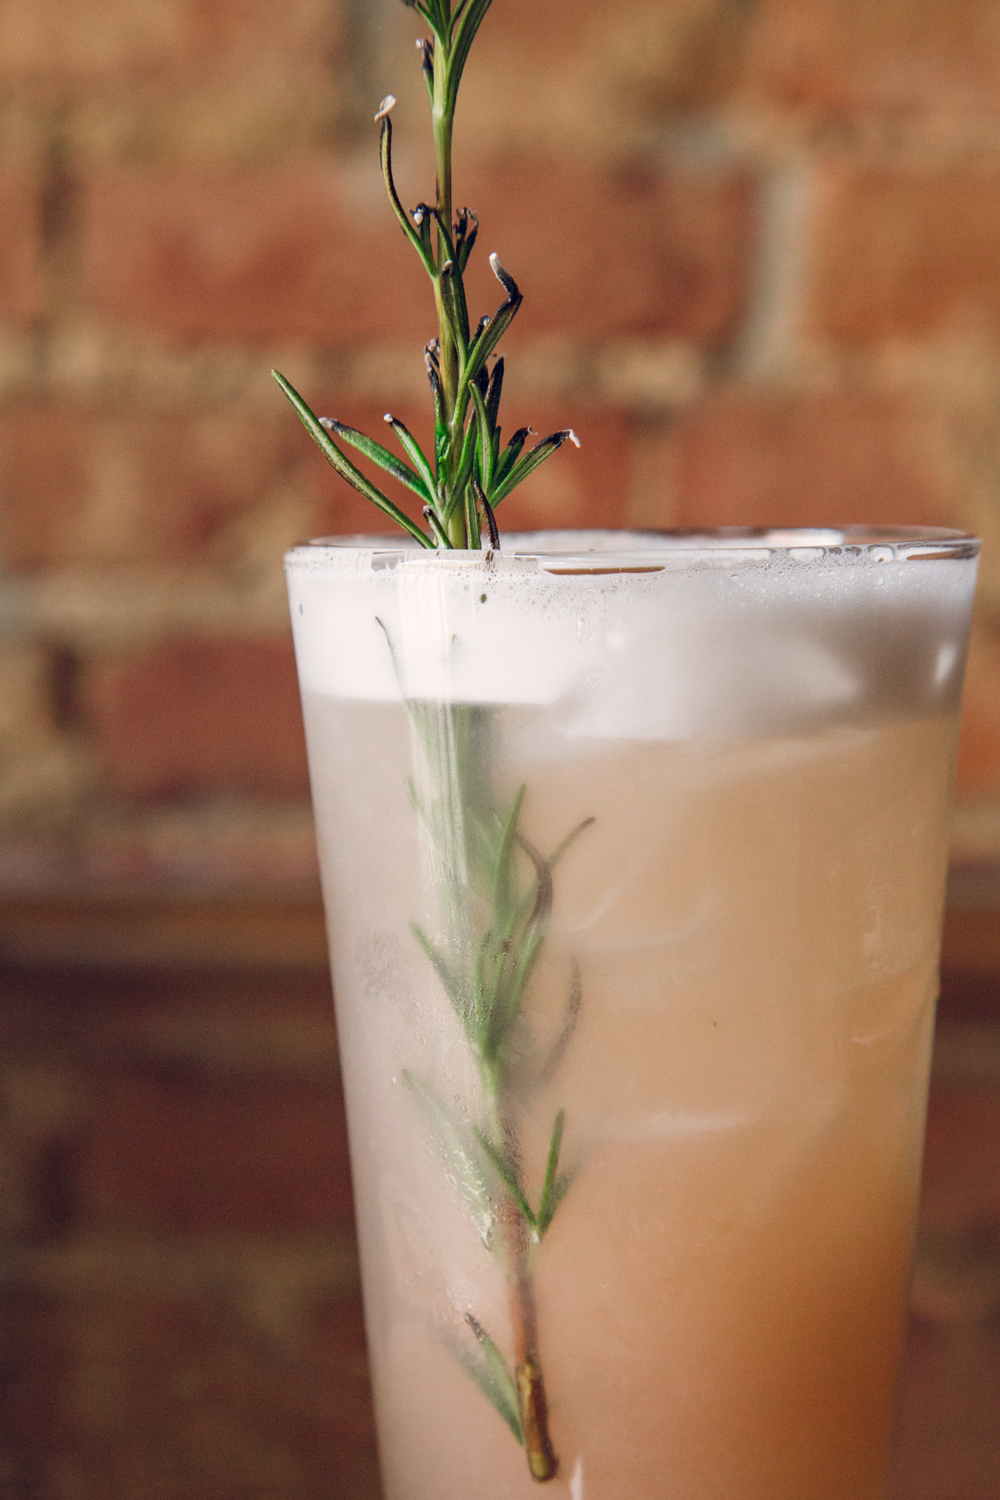 The Mexican Shakedown: a sprig of smoked rosemary, egg whites, and a fruity blend of magical flavor. / Image: Catherine Viox